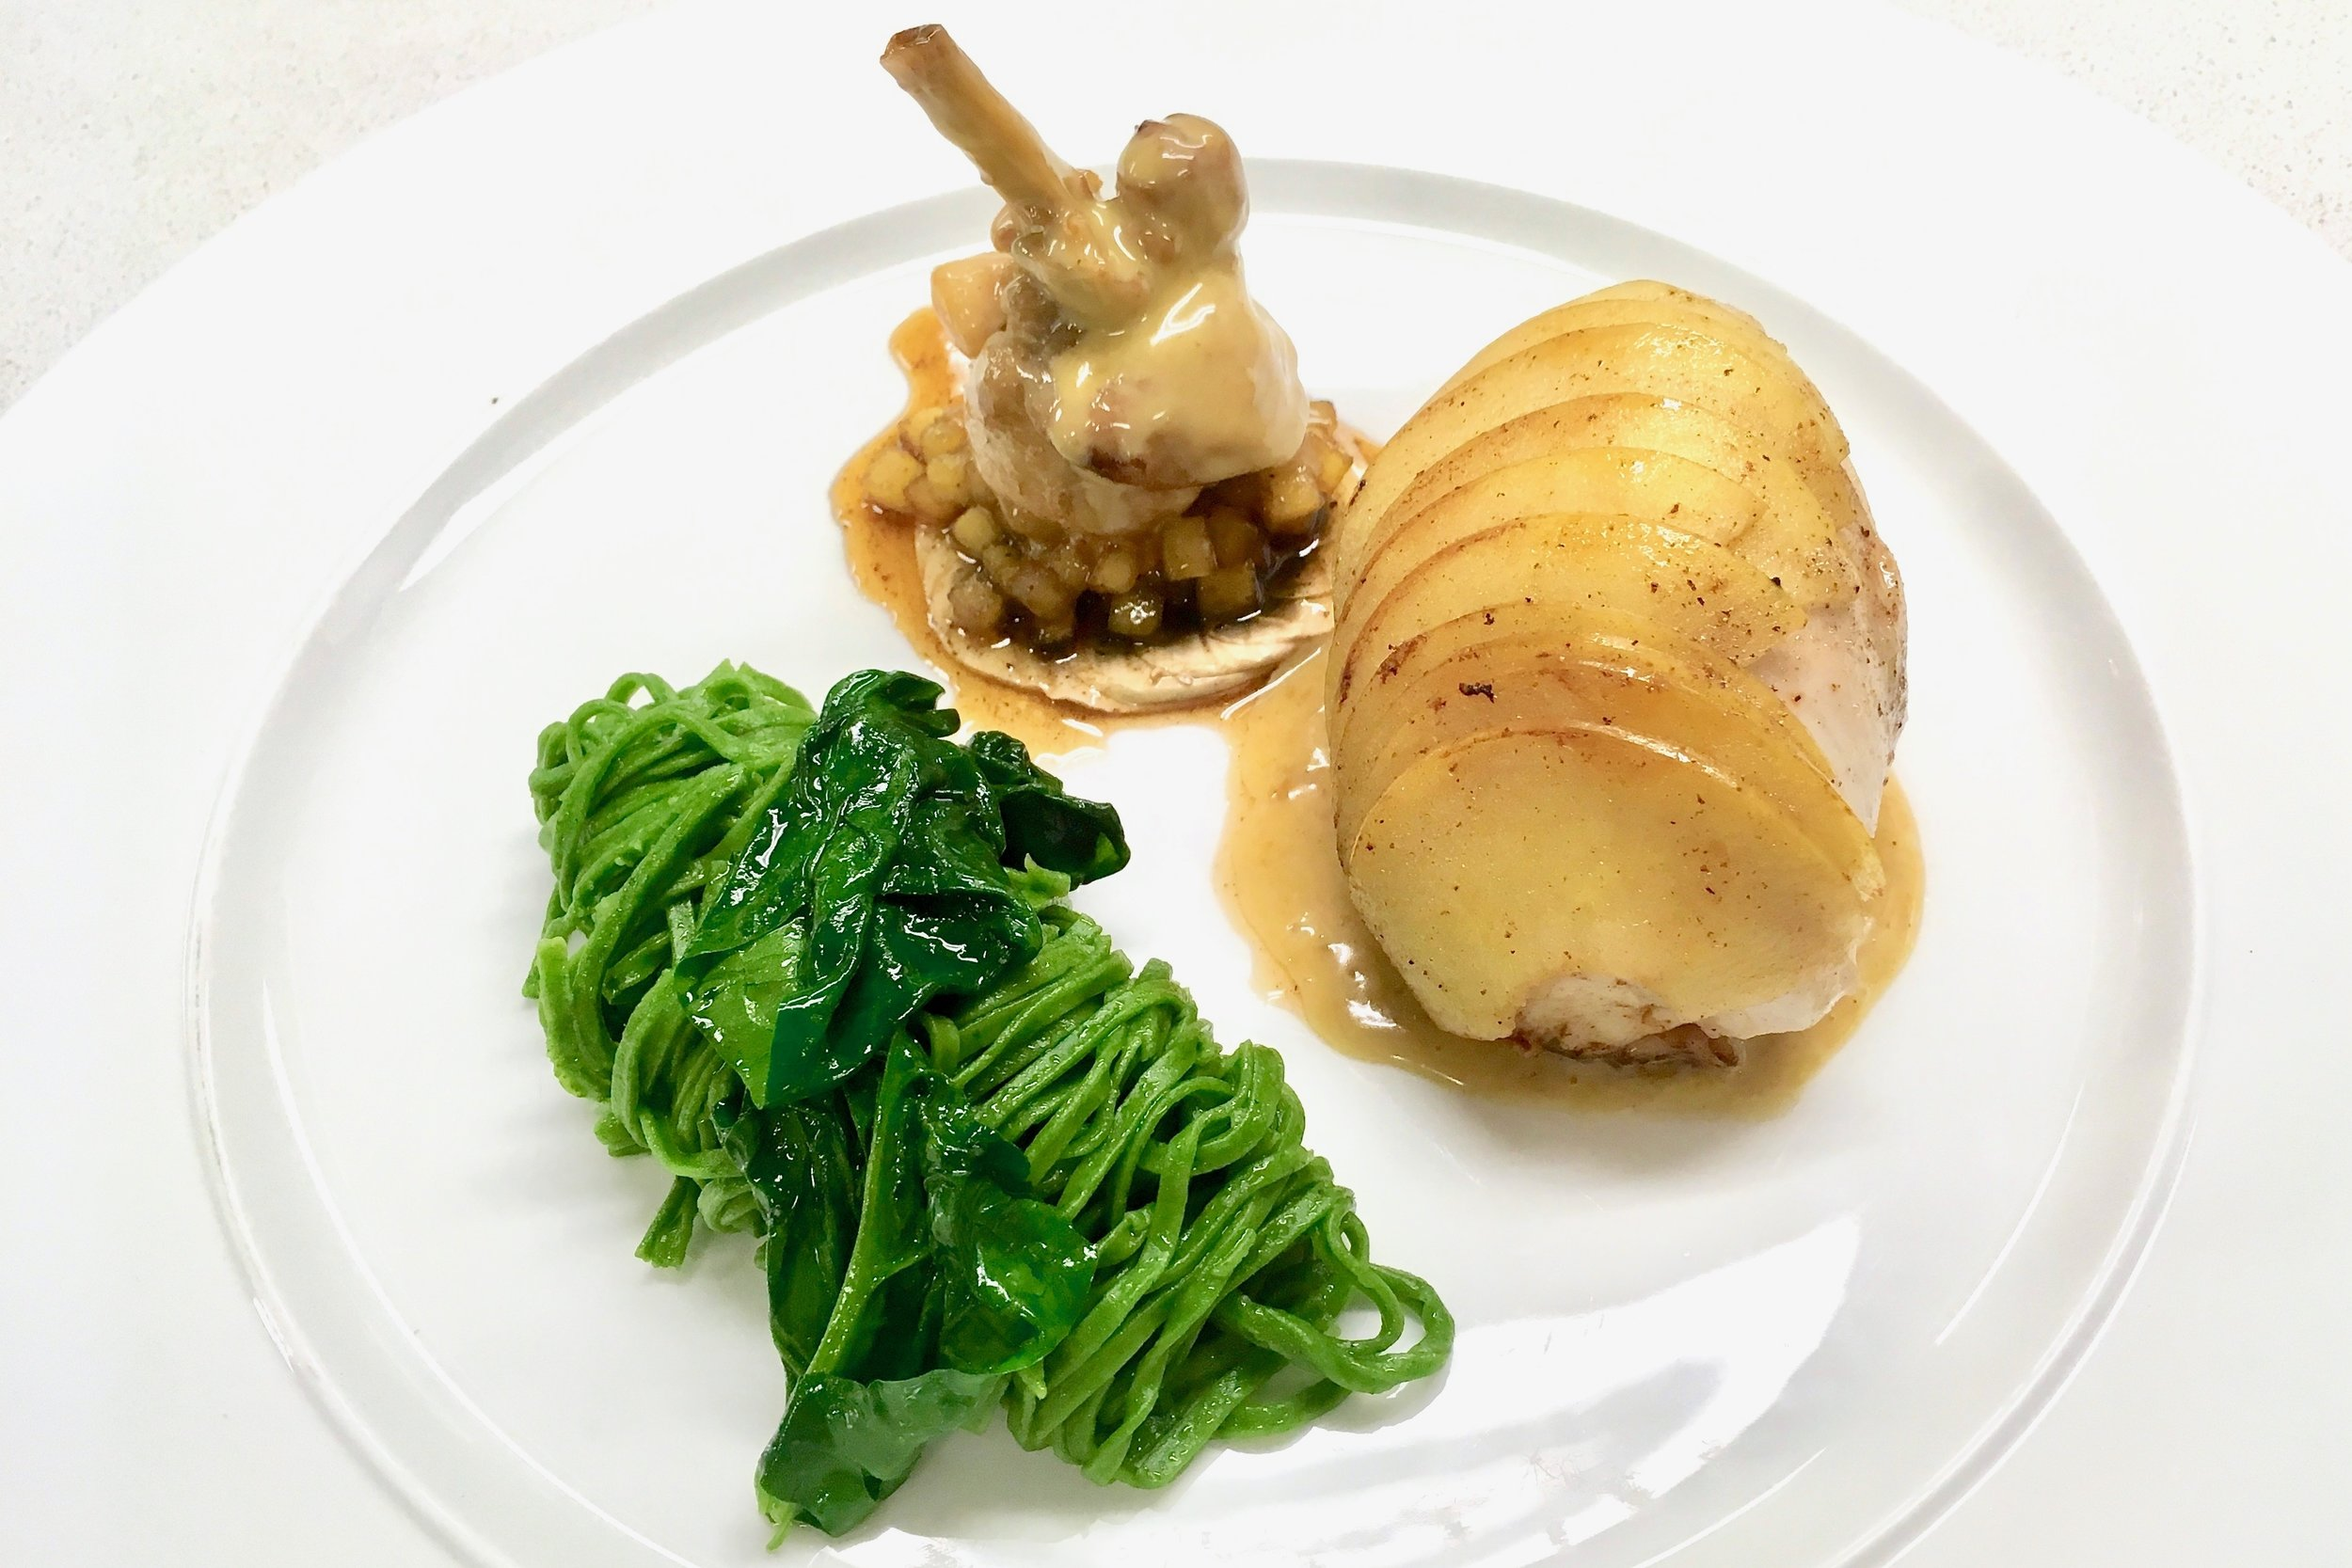 Rabbit leg with cider and apples